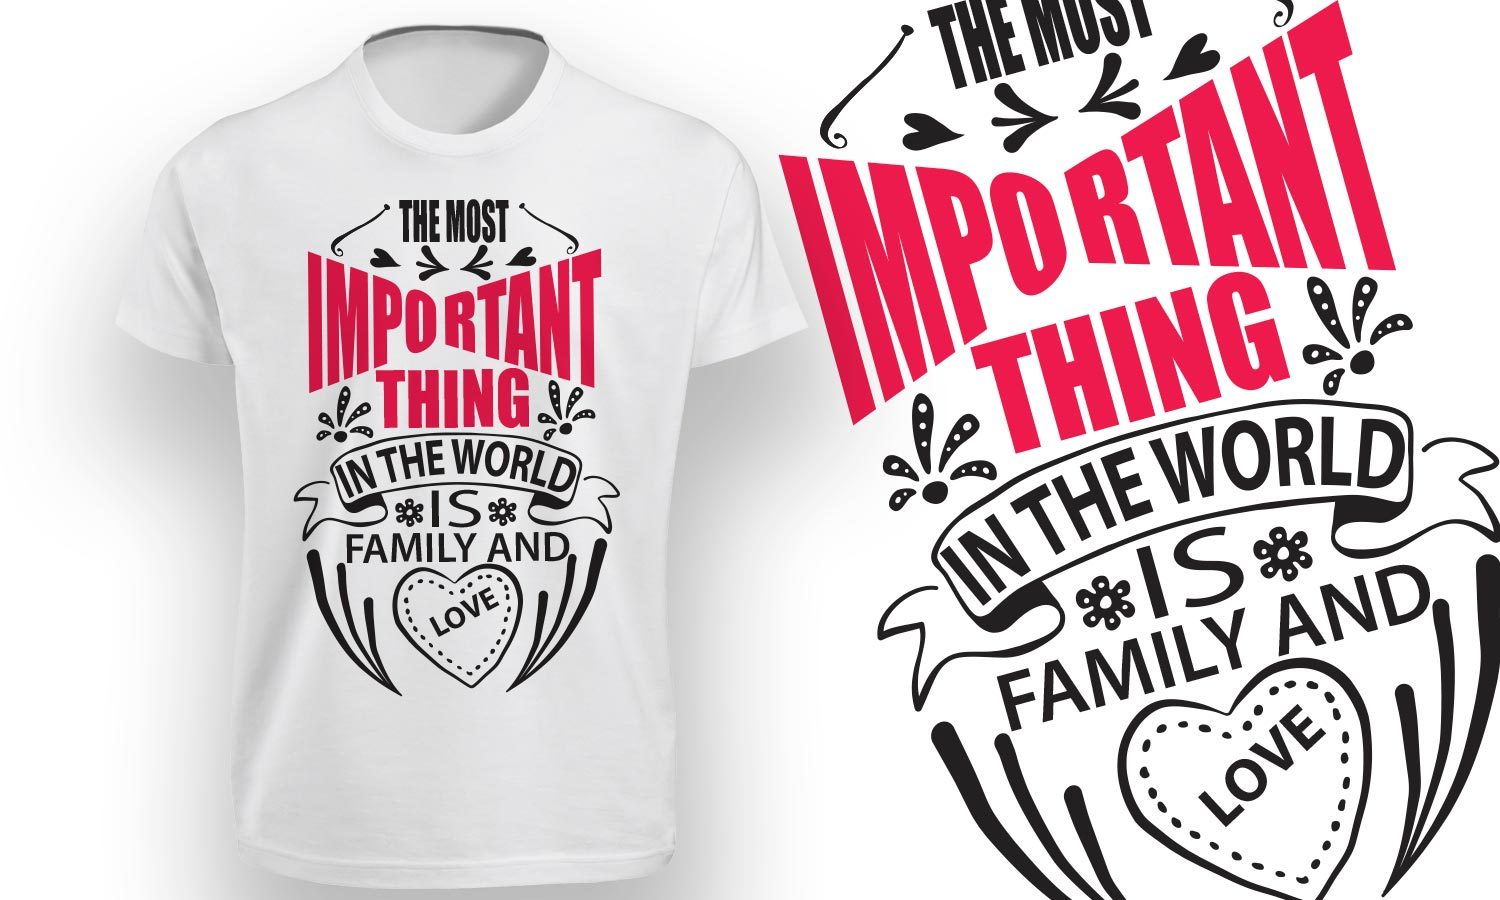 Family - Printed T-Shirt for Men, Women and Kids - TS130